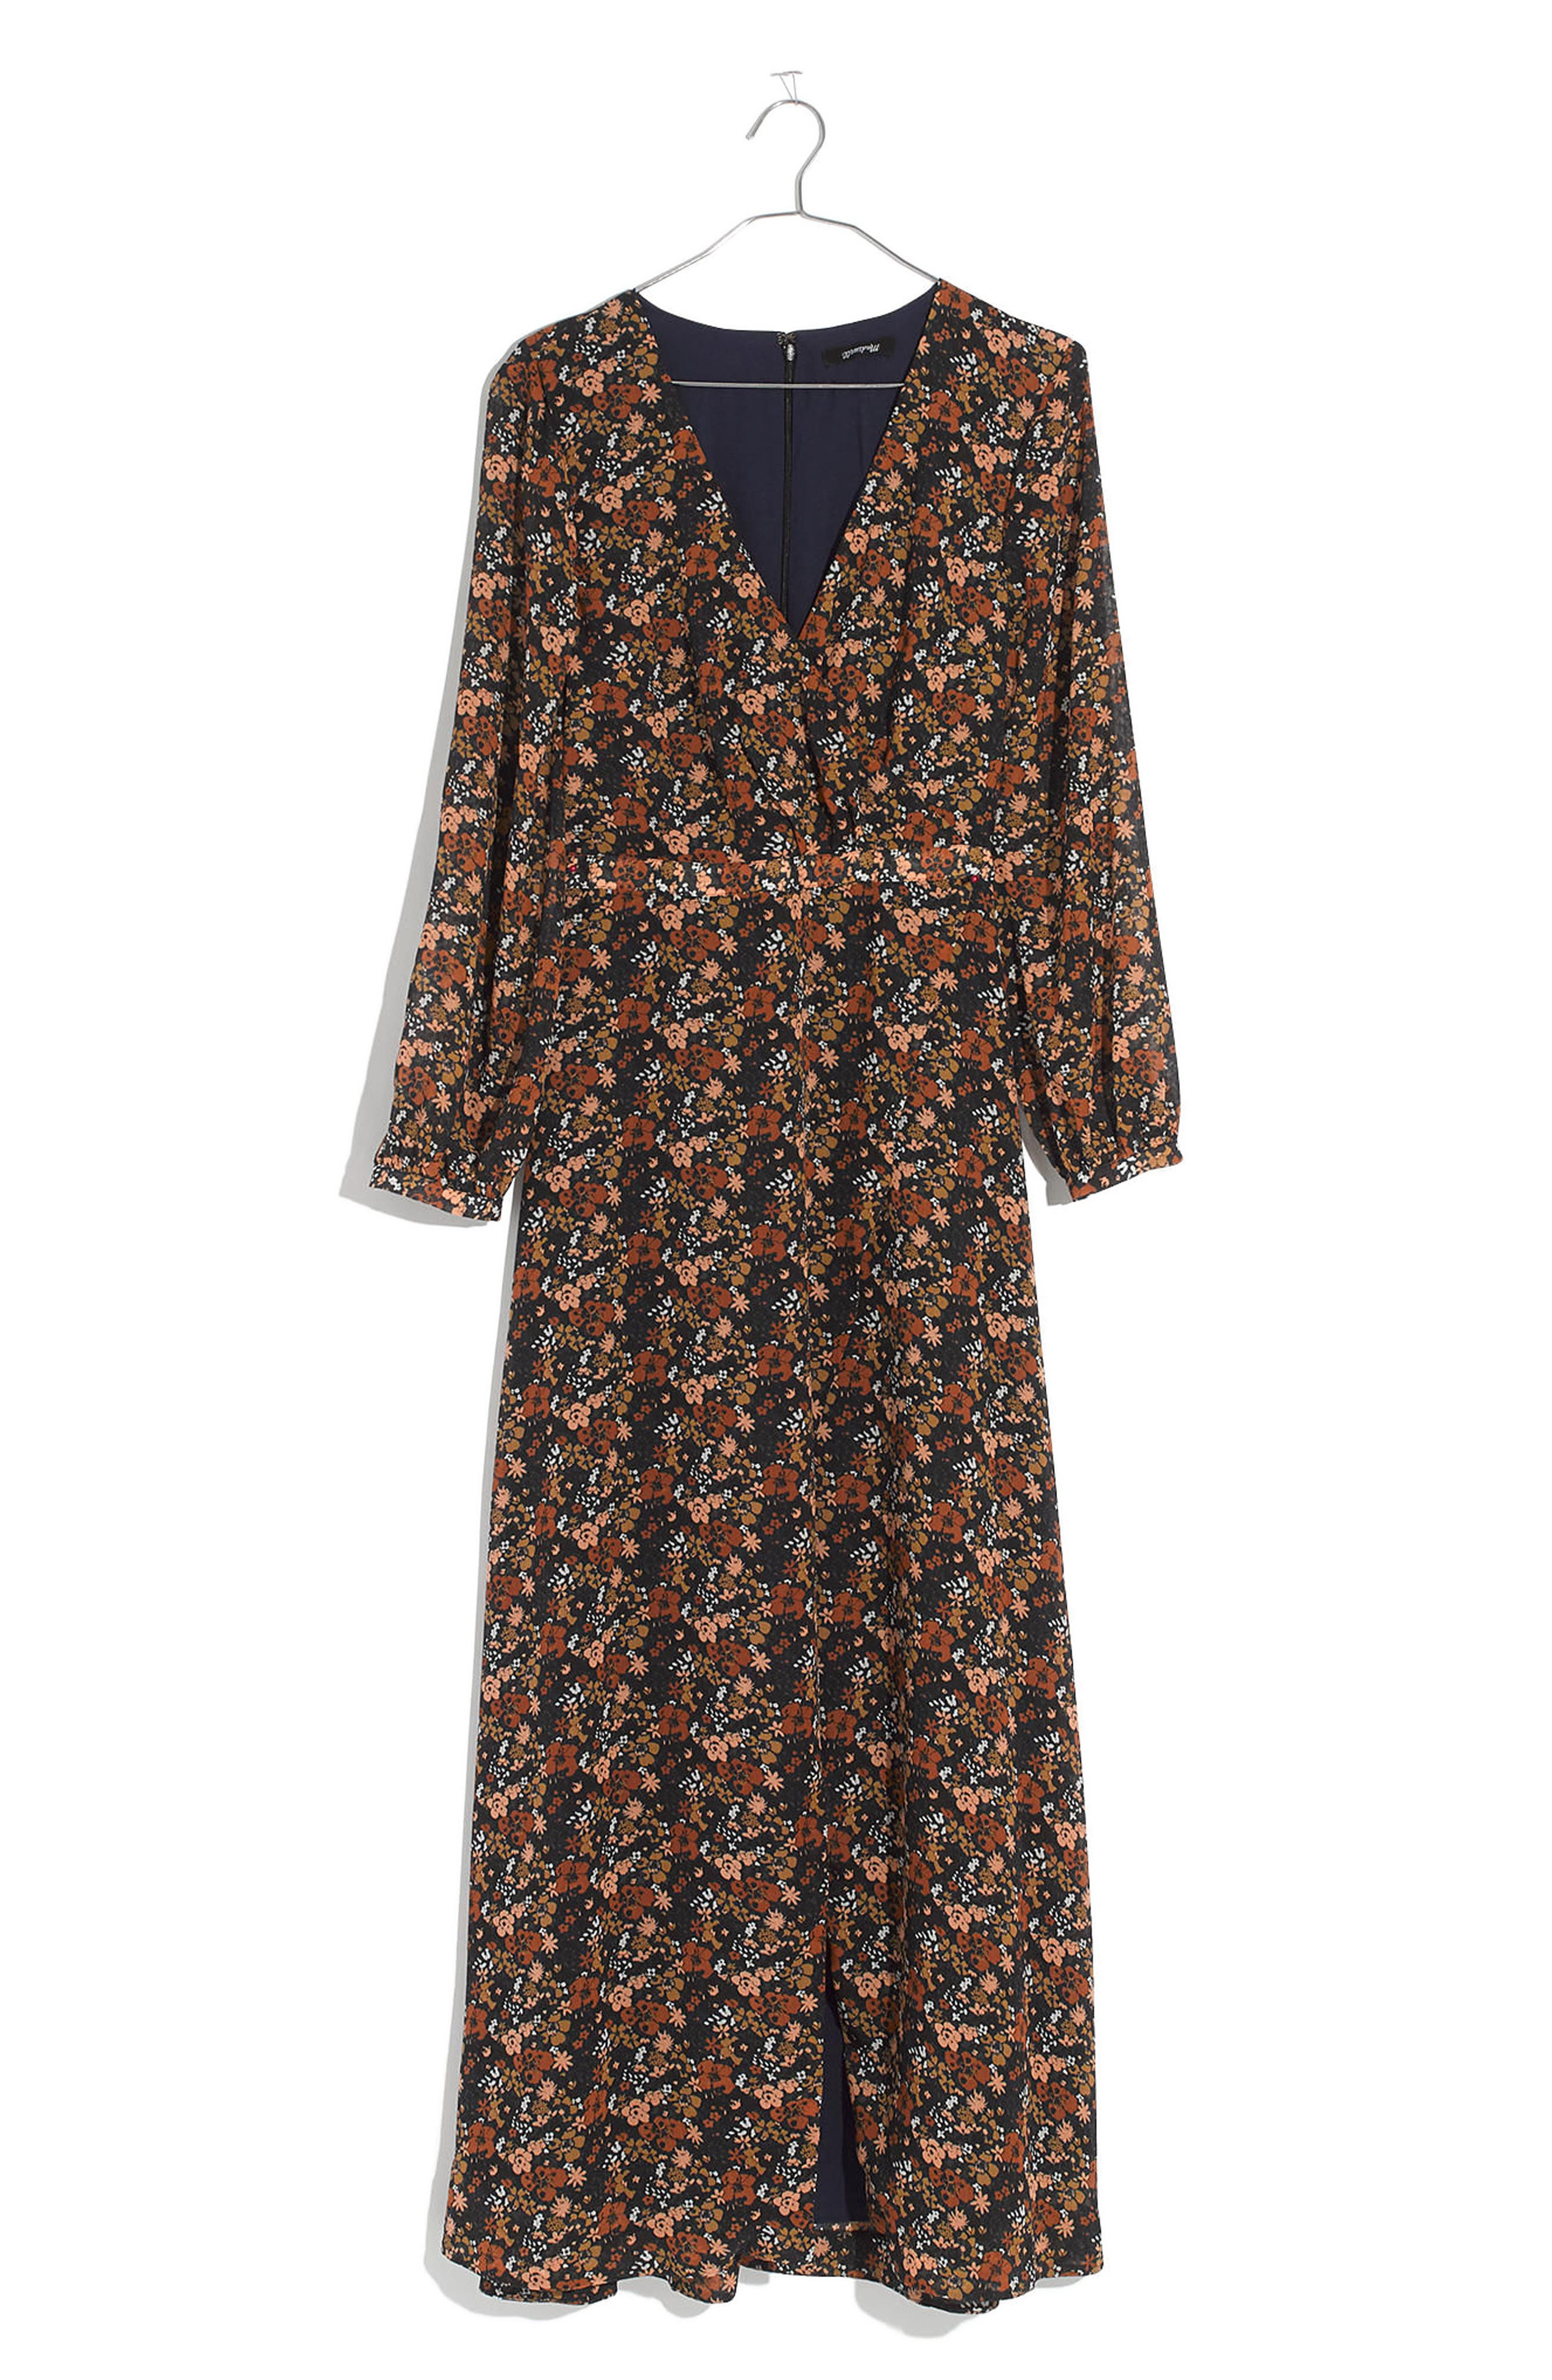 Nightflower Maxi Dress,                             Alternate thumbnail 4, color,                             Woodland Floral